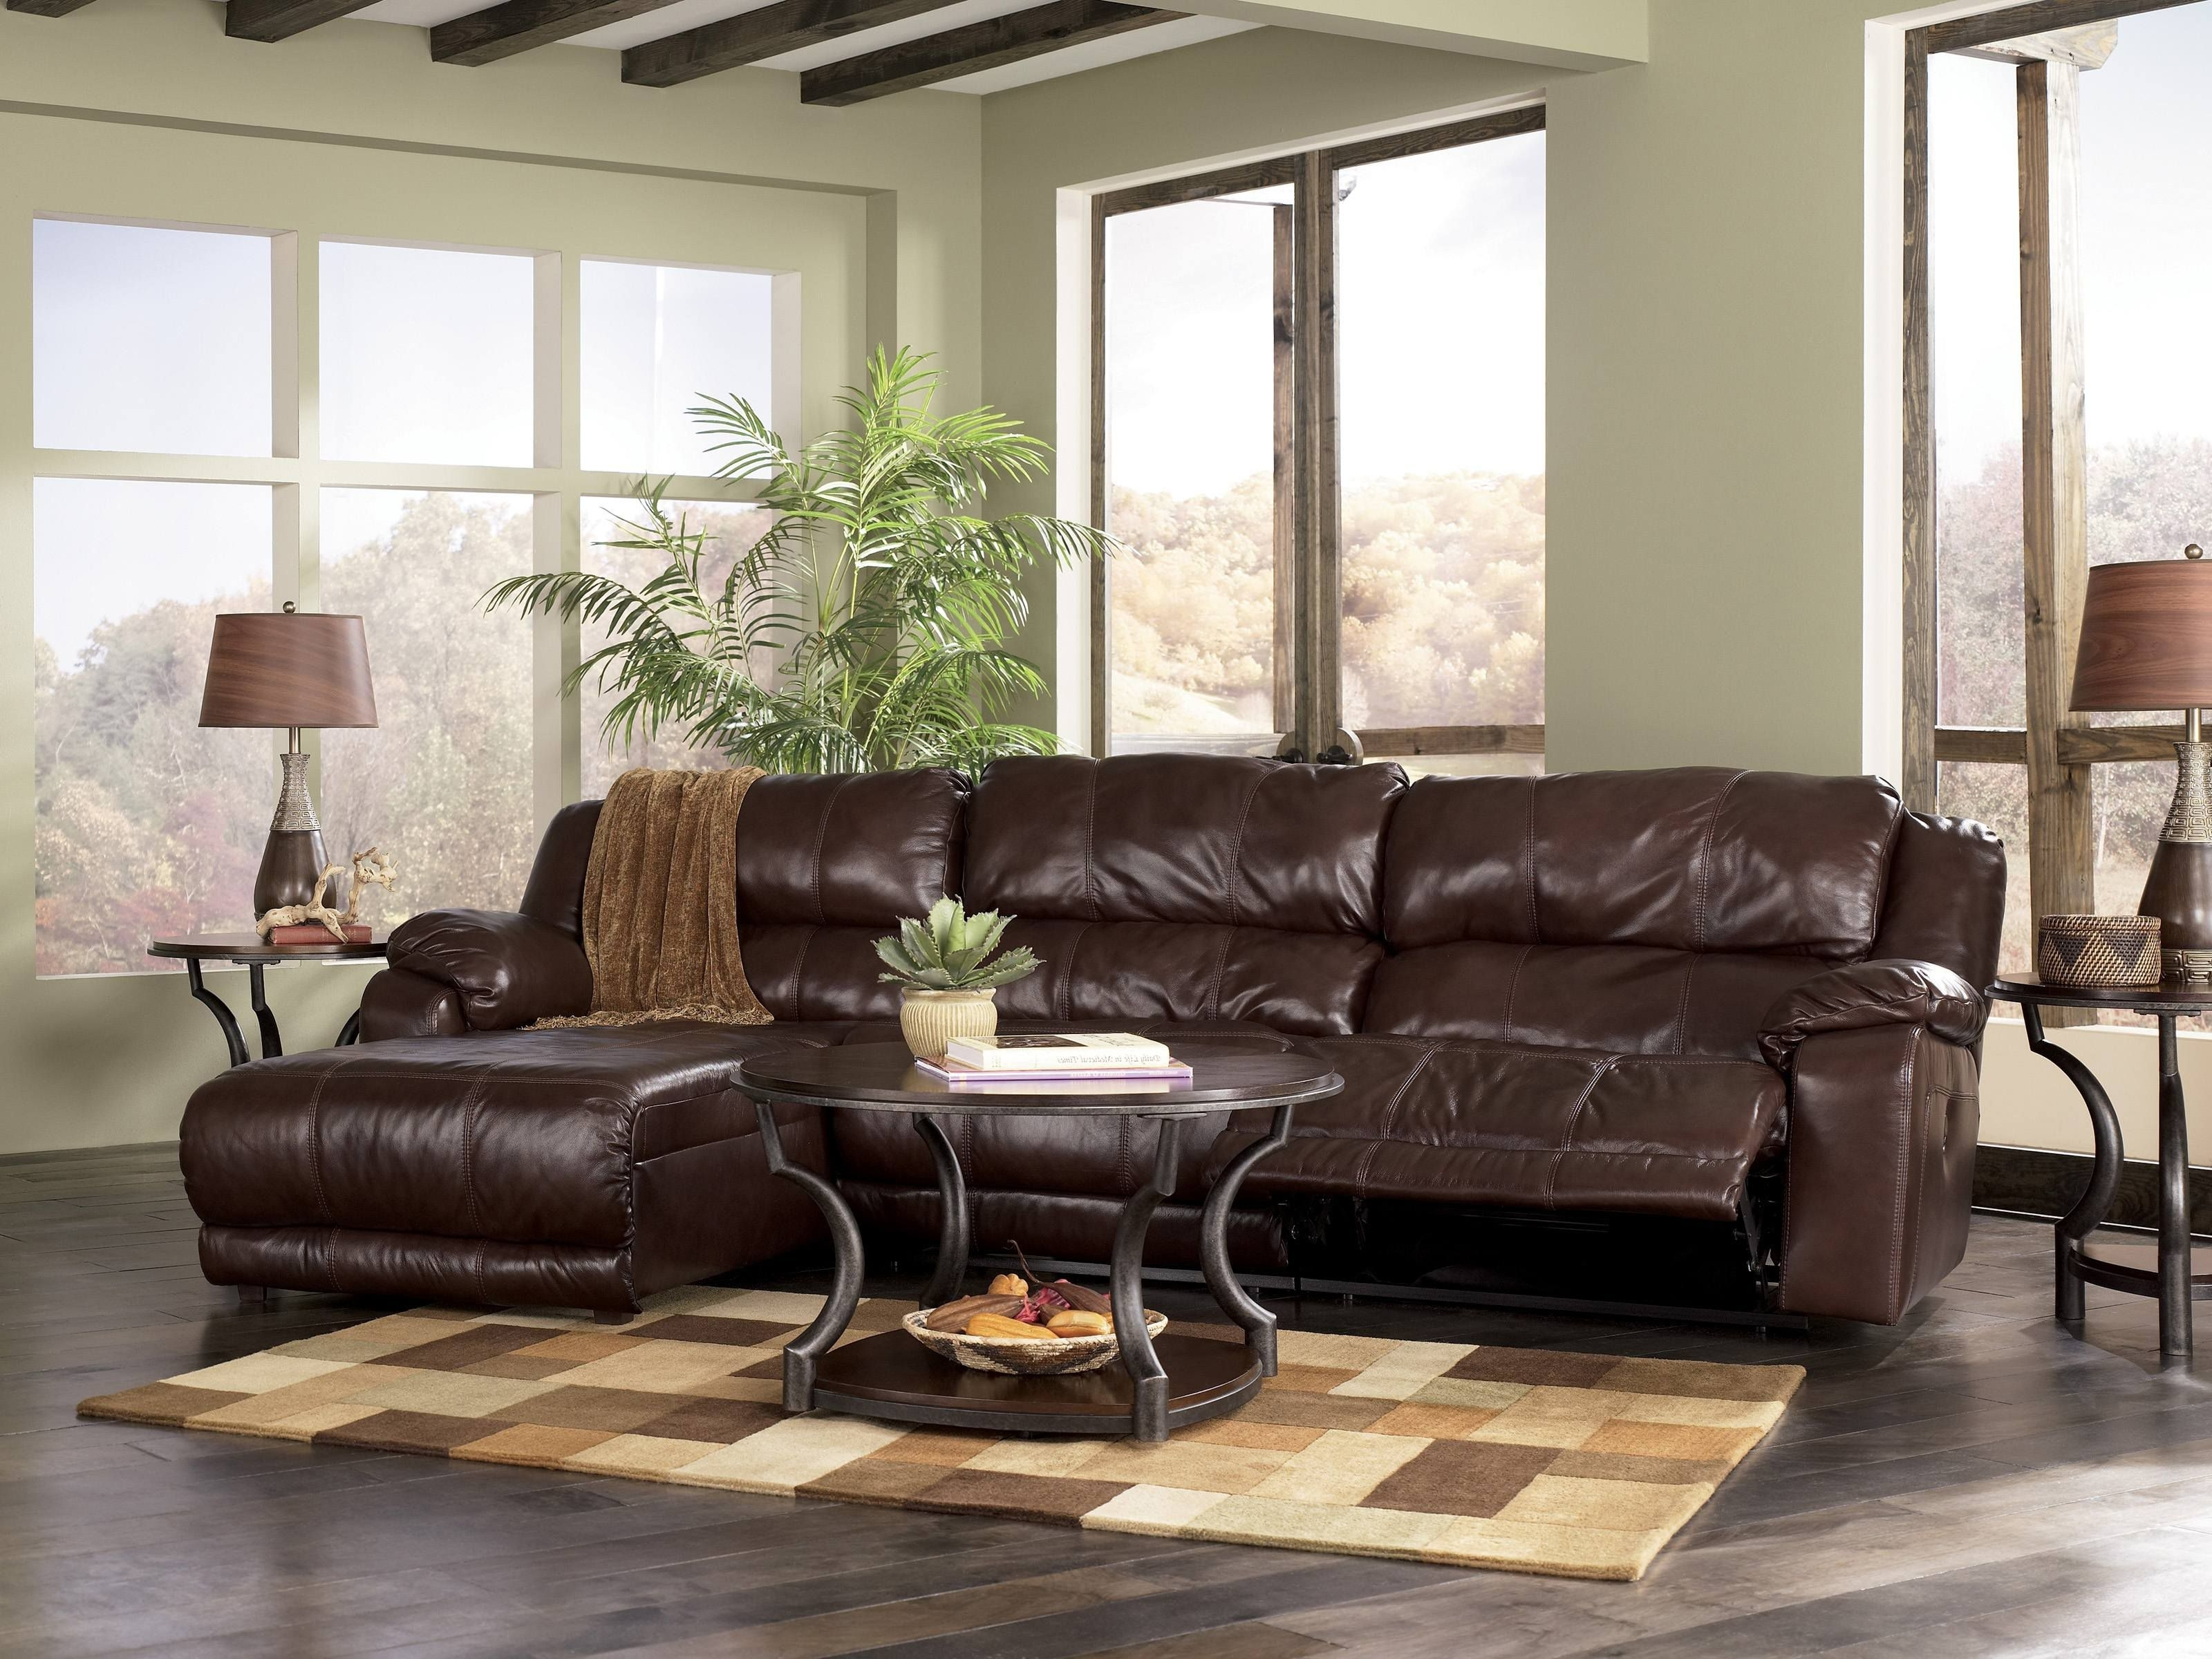 Sectional Sofas With Recliners (View 9 of 15)